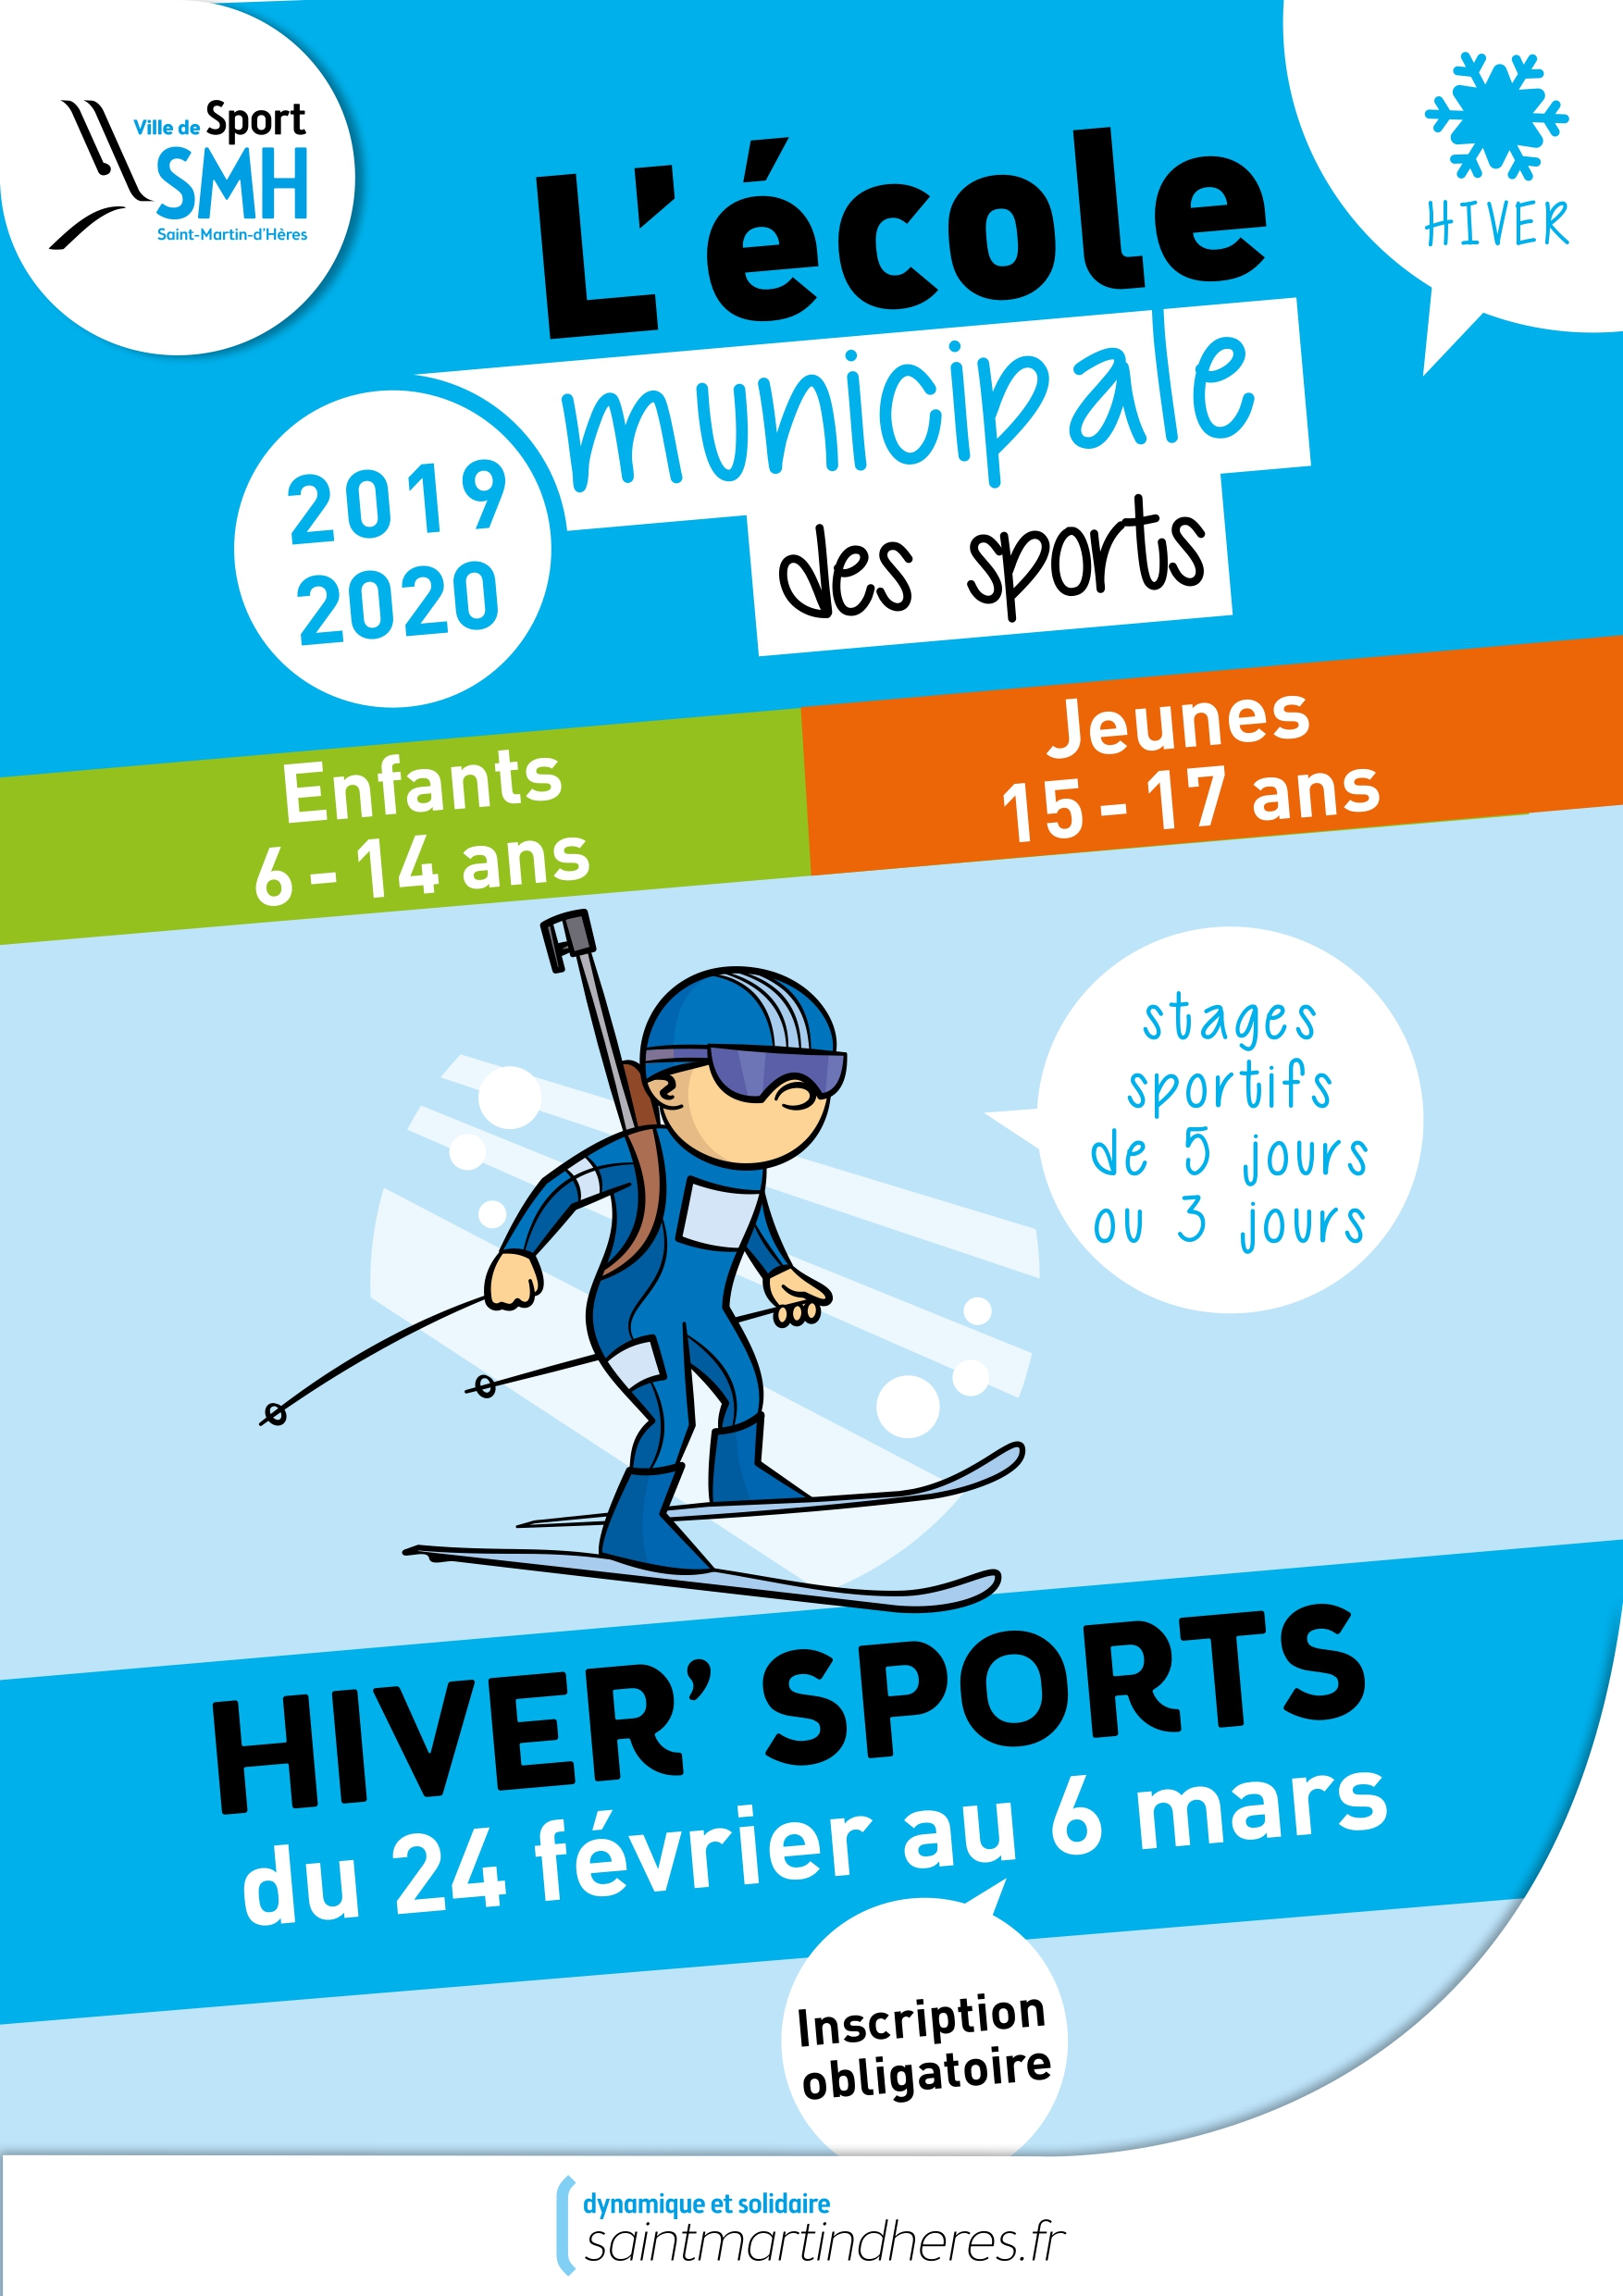 Hiver sports 2020